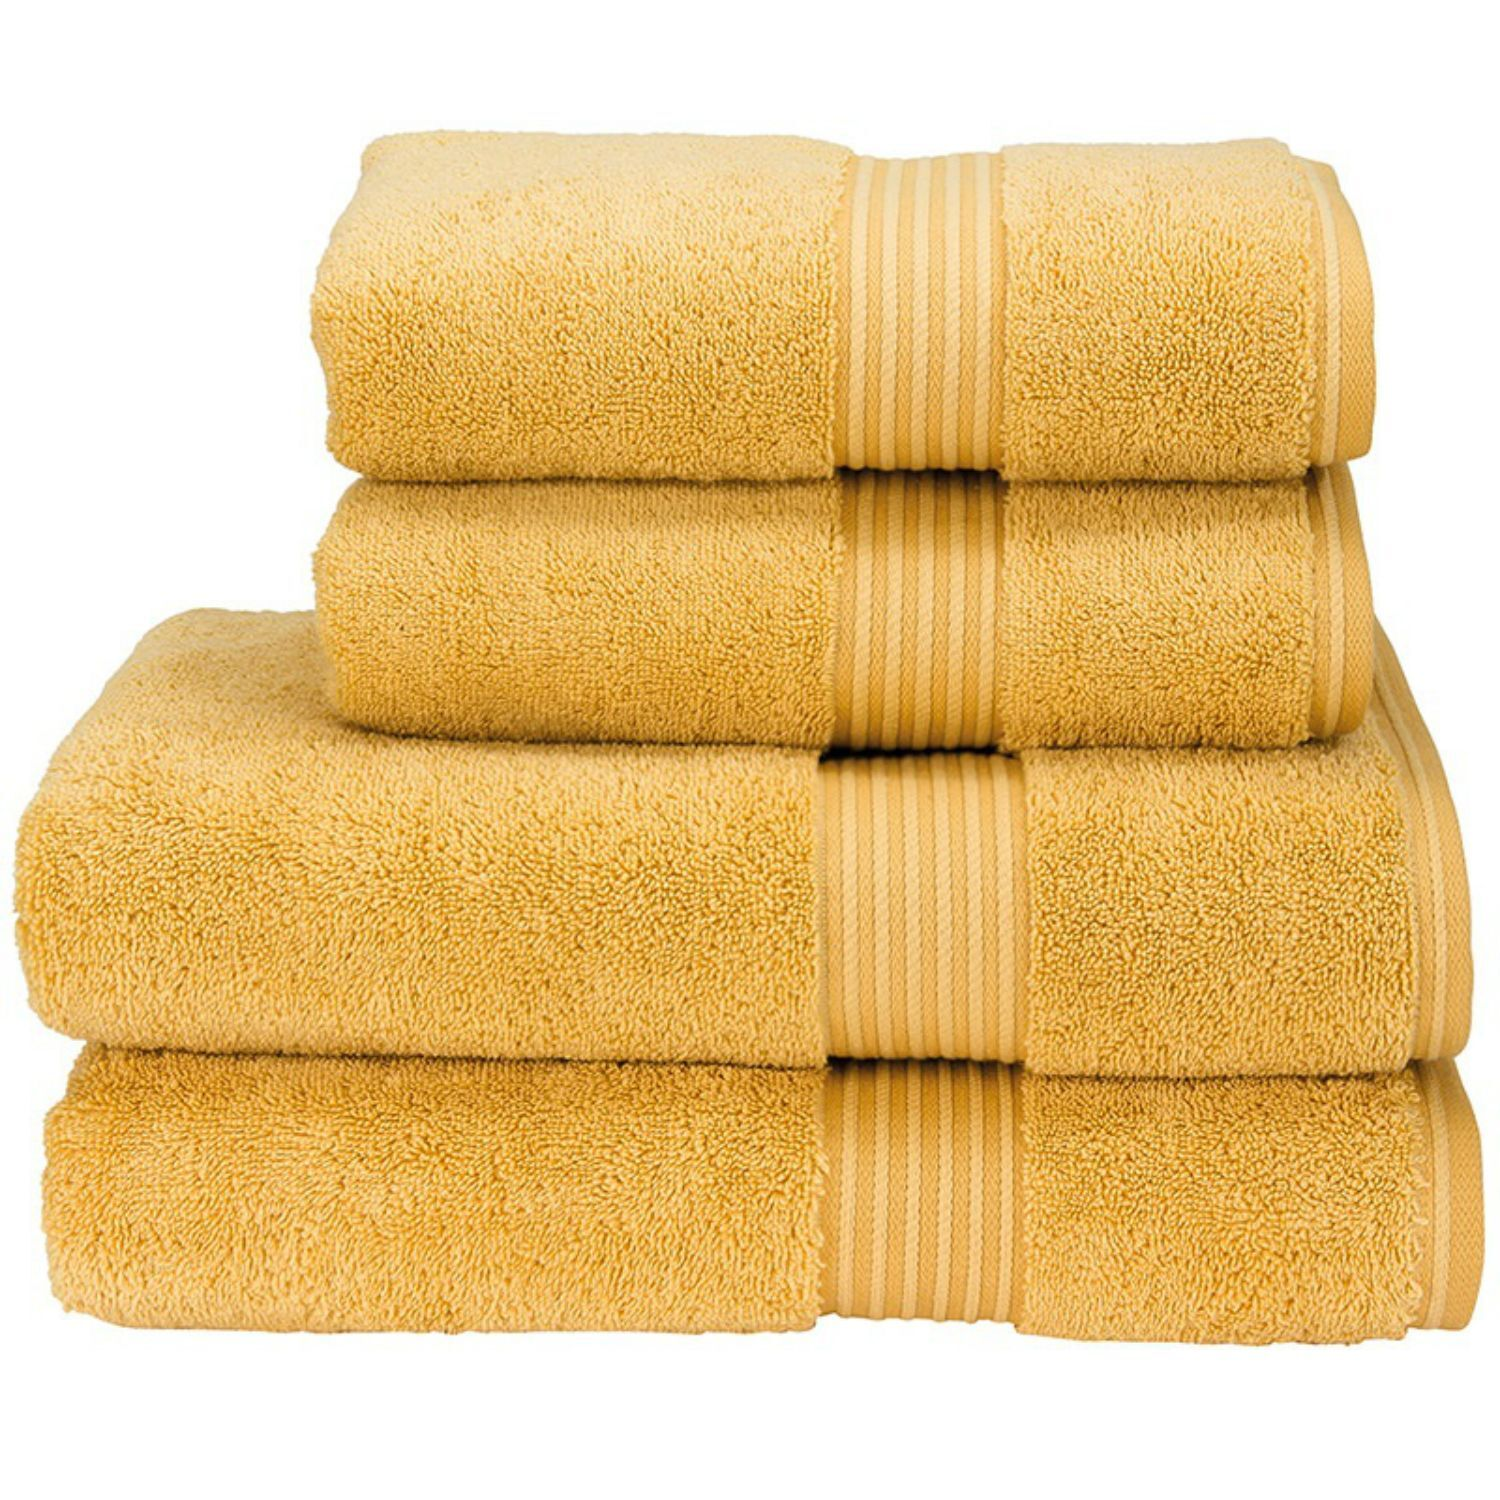 Christy Hotel Towels (Honey)